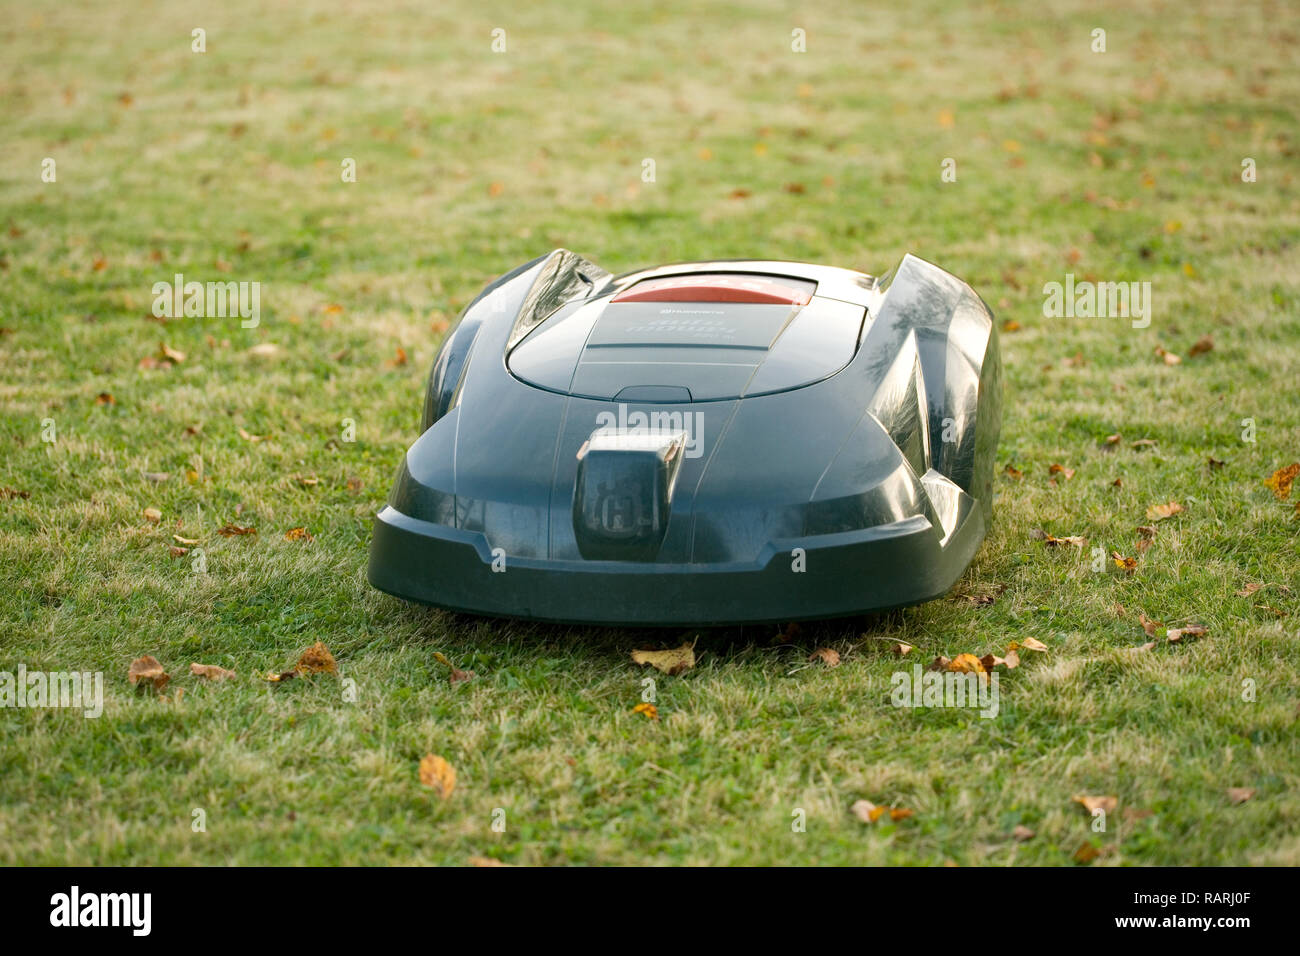 Green automatic robot lawnmower cutting grass head on approaching camera - Stock Image